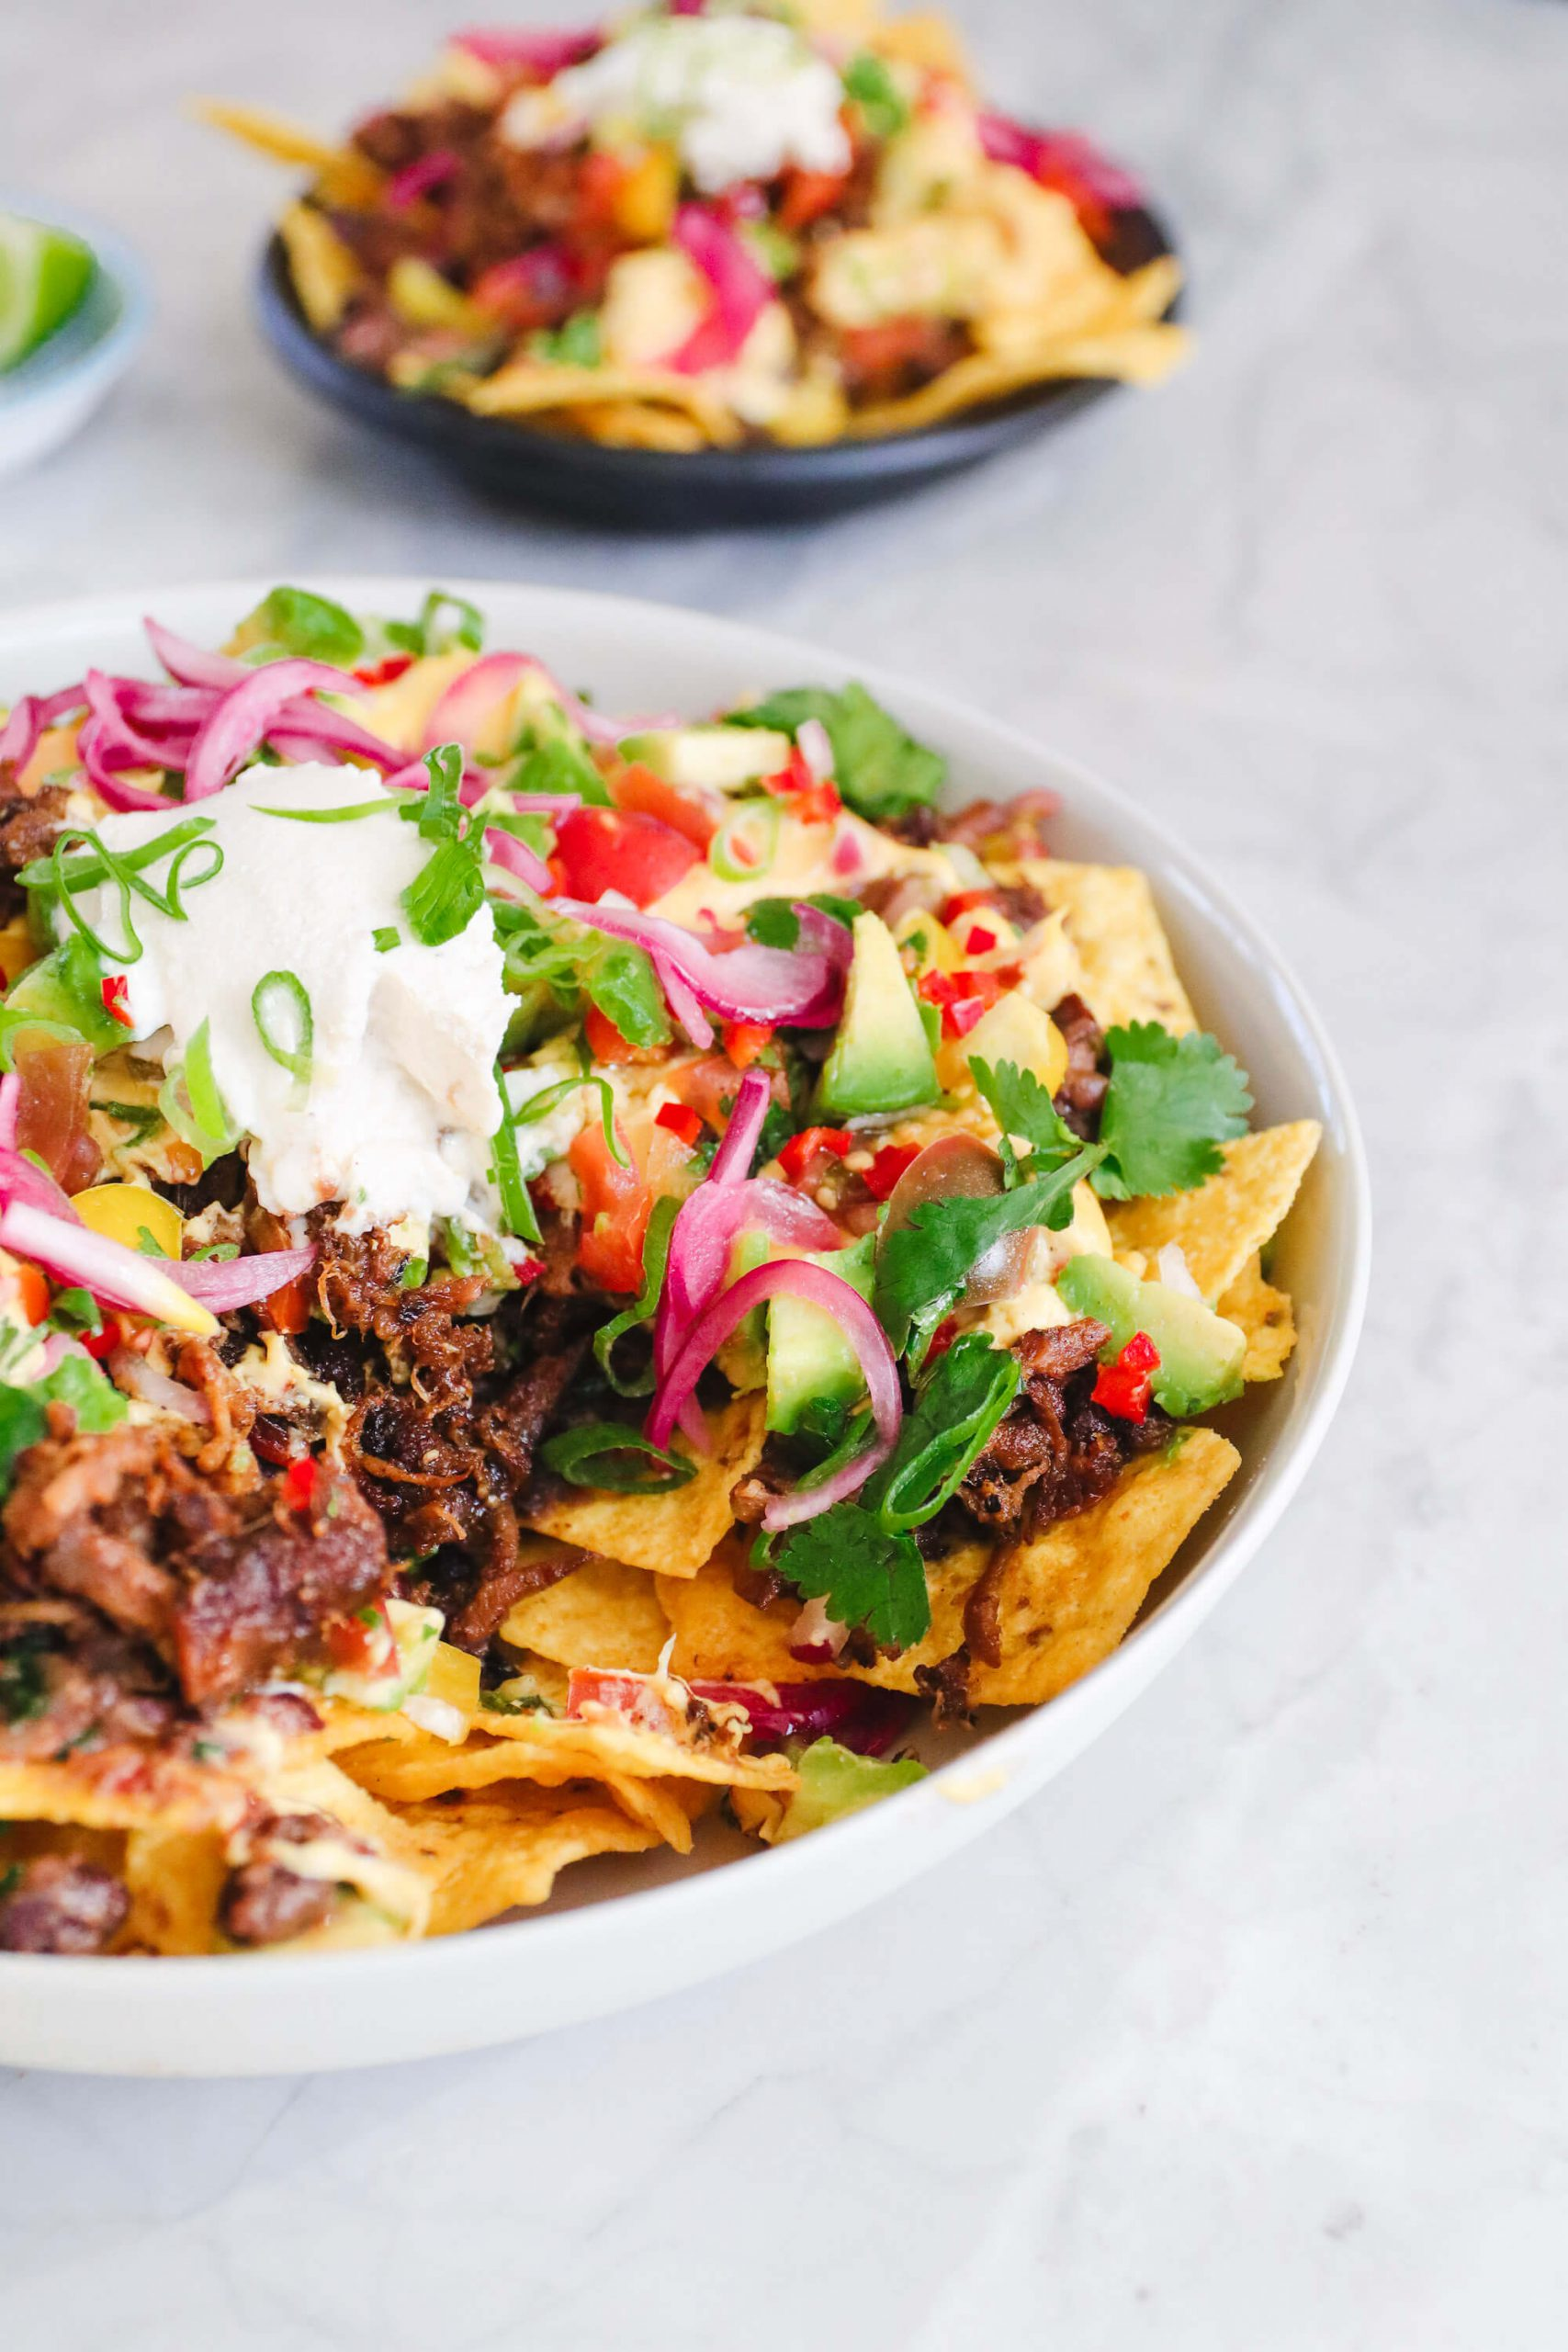 Fable Nachos with 'Not-cho' Cheese Sauce